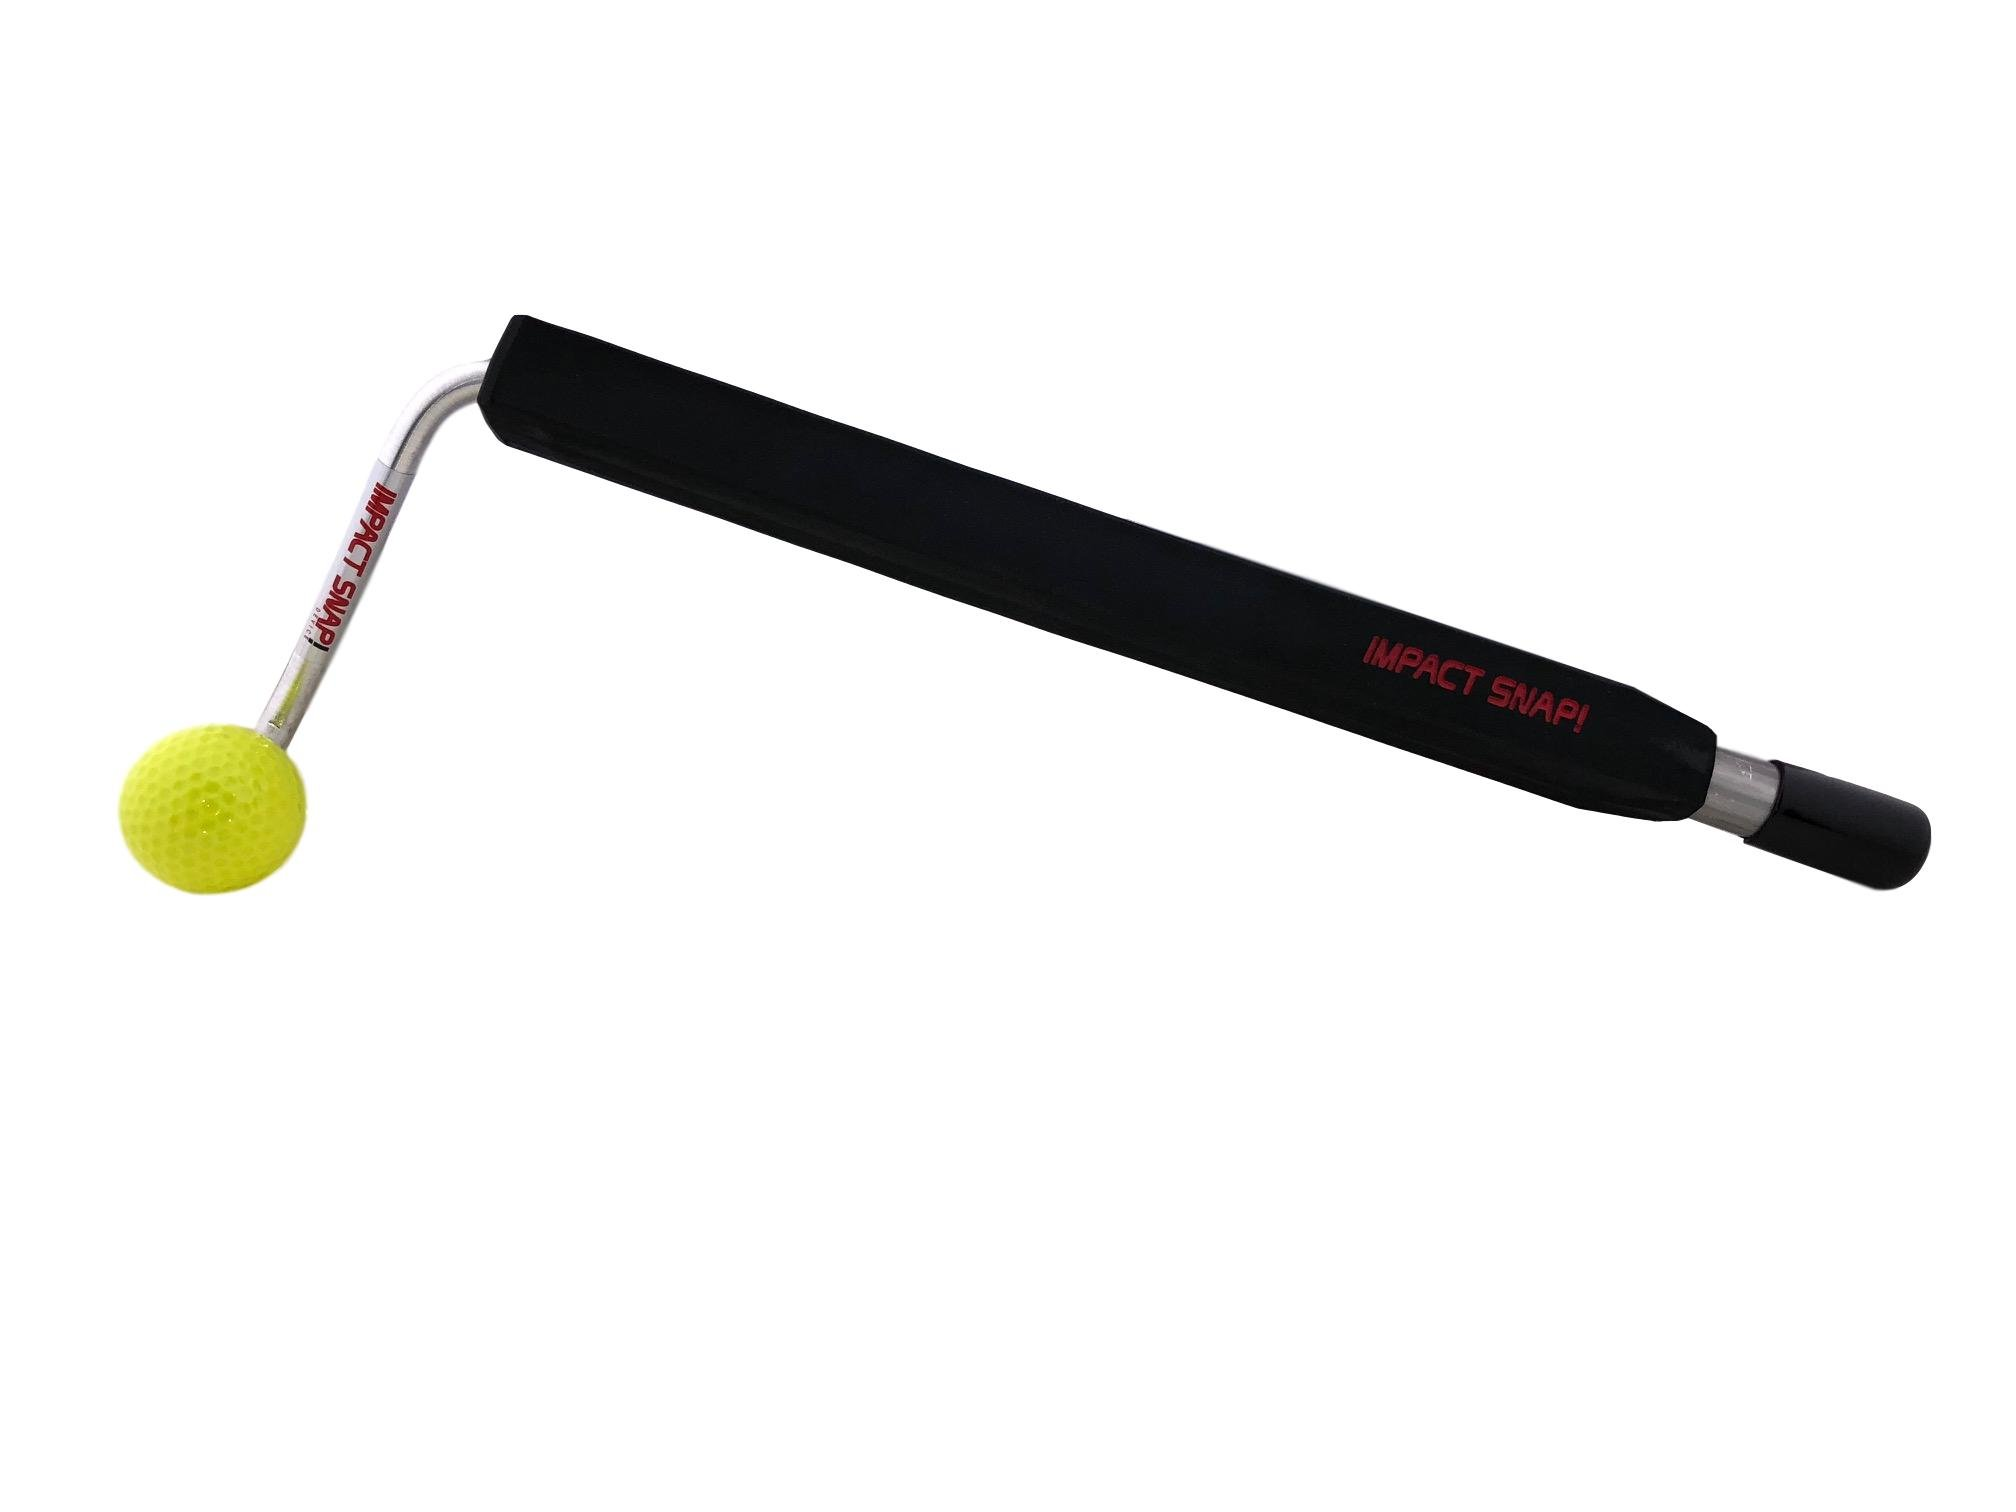 IMPACT SNAP Golf Swing Trainer and Practice Training Aid - Right Handed by IMPACT SNAP